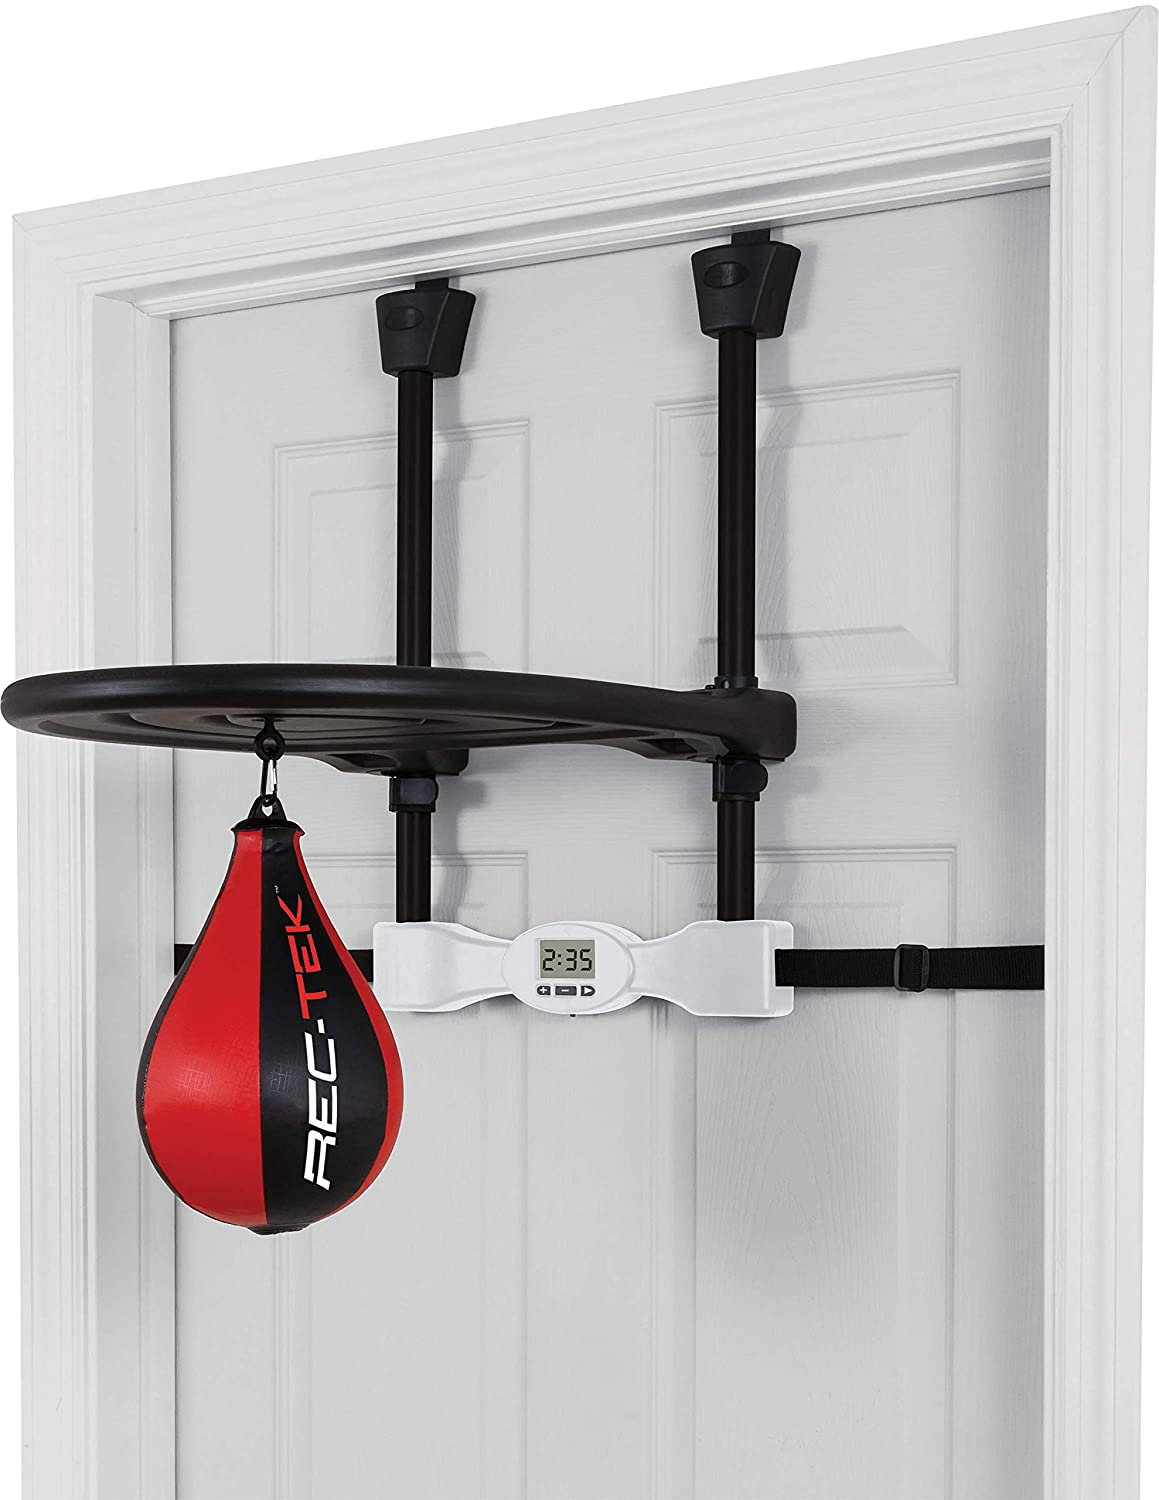 Rec-Tek Over The Door Speed Bag for Kids - Features Easy Setup with No Tools Requi赤, Automatic Scoring, and Adjustable Height